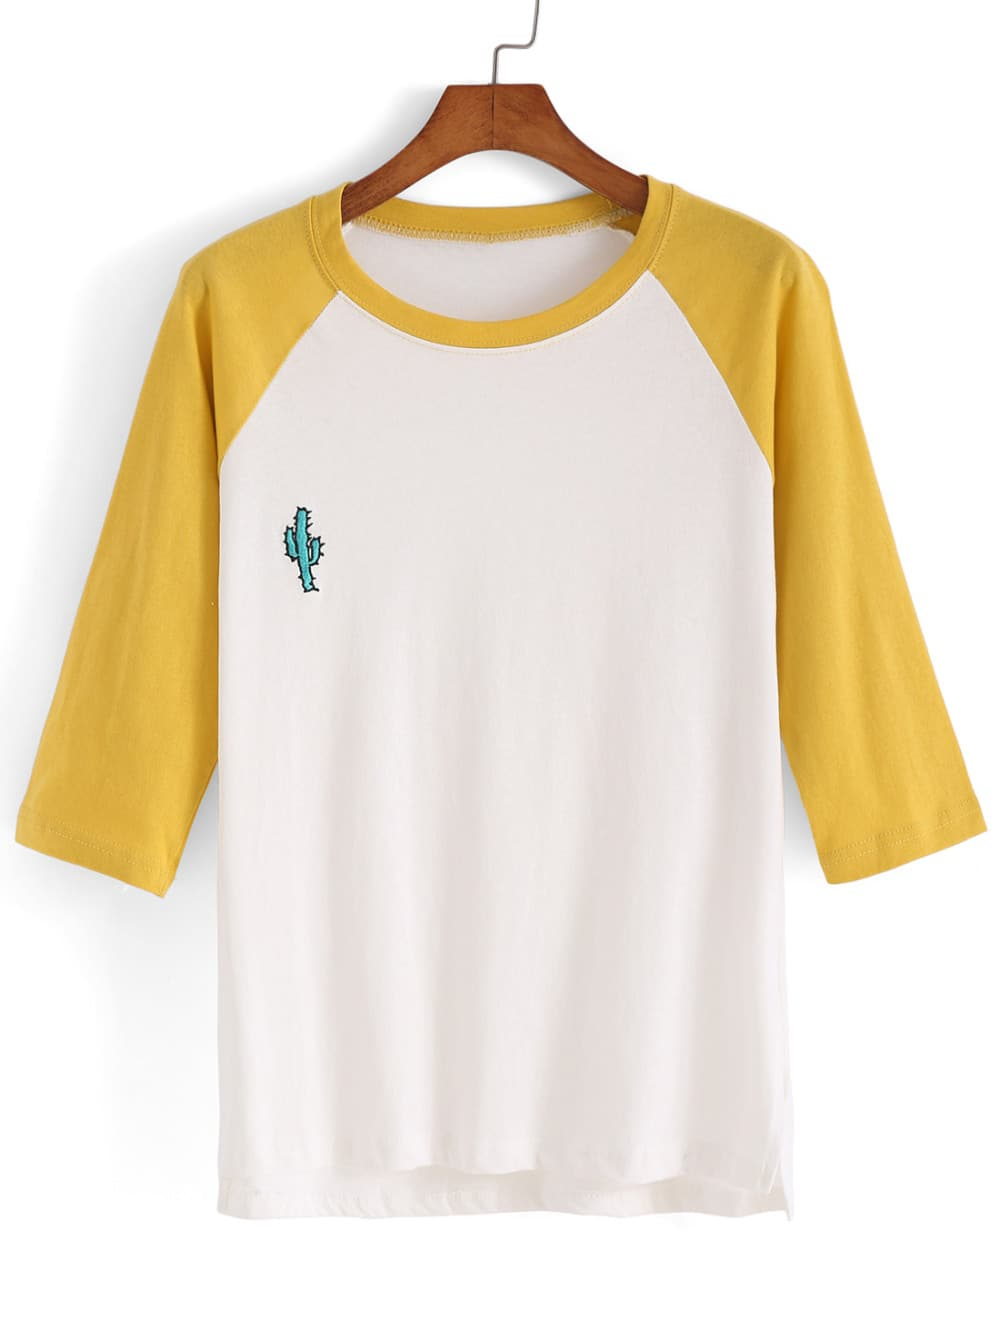 Dip hem color block embroidered t shirt shein sheinside